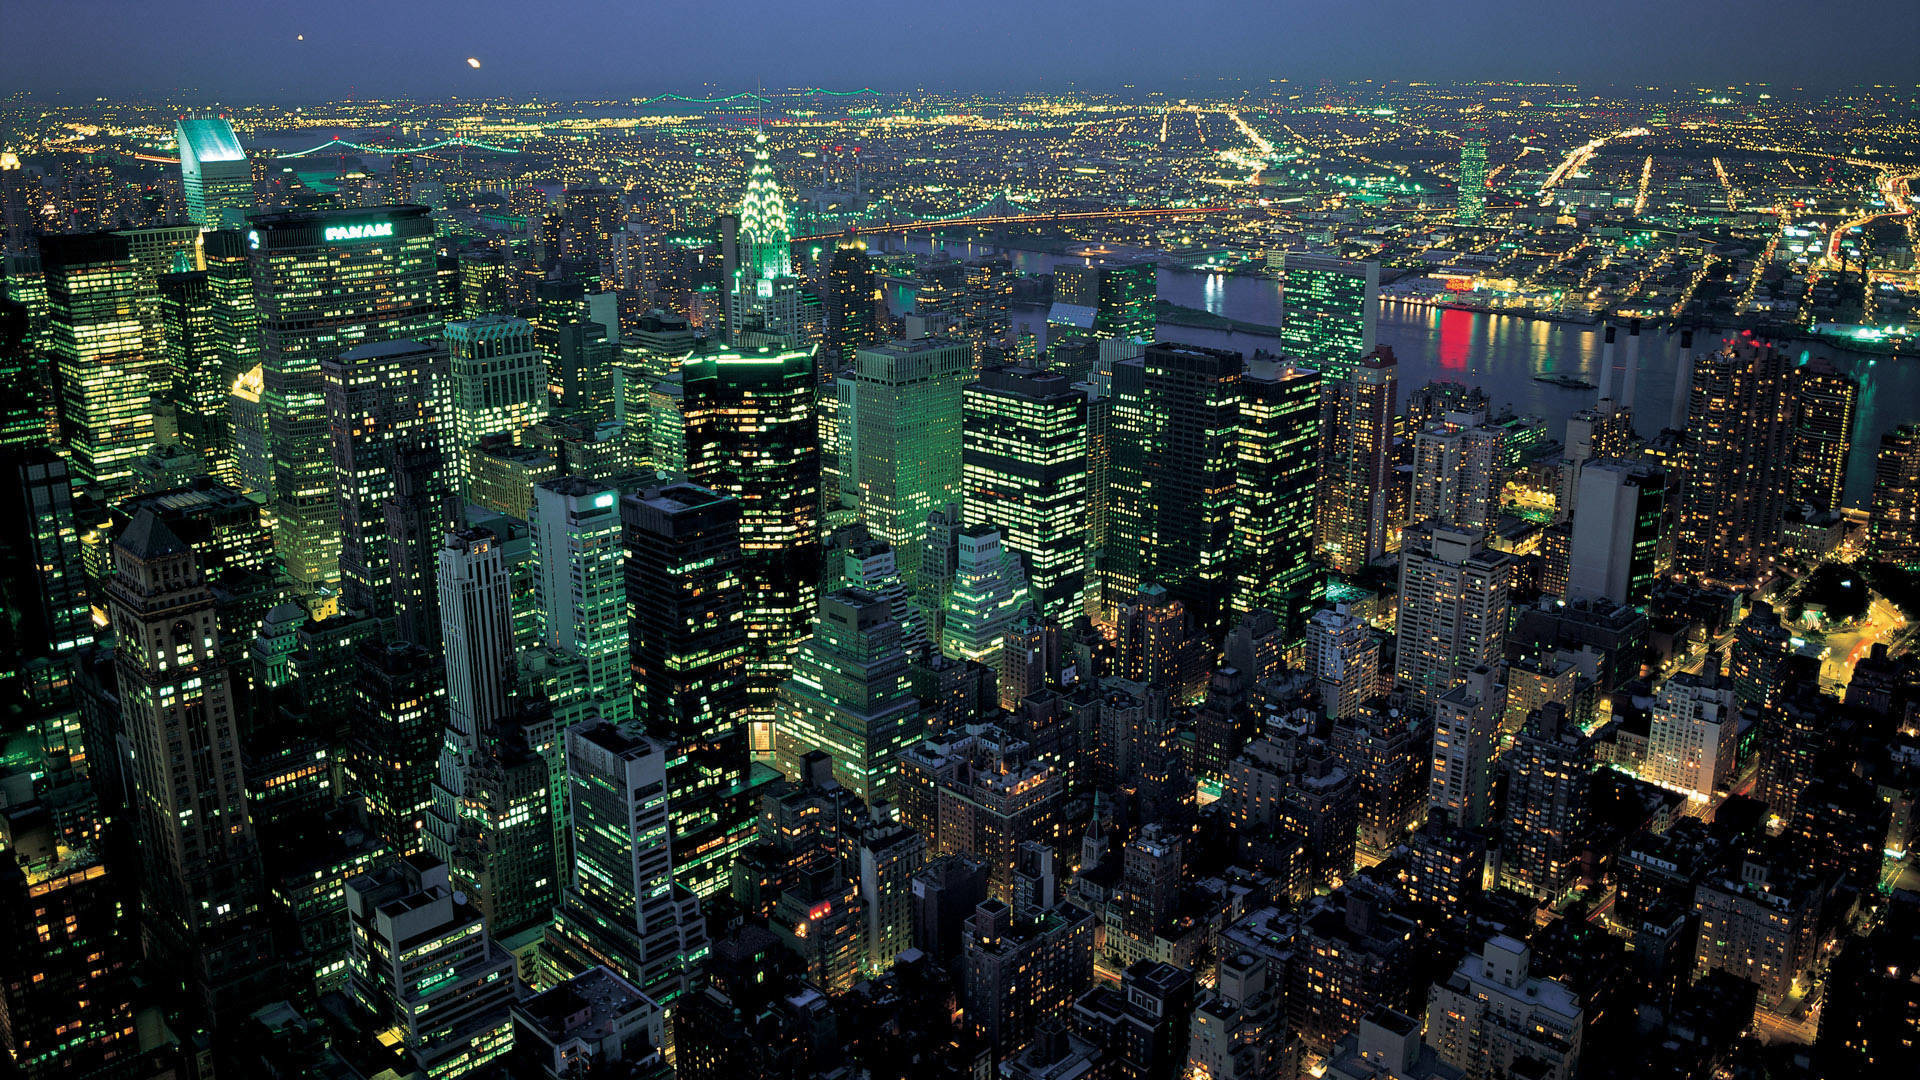 Star Wars New York Night Panorama 1366744 Hd Wallpaper Backgrounds Download